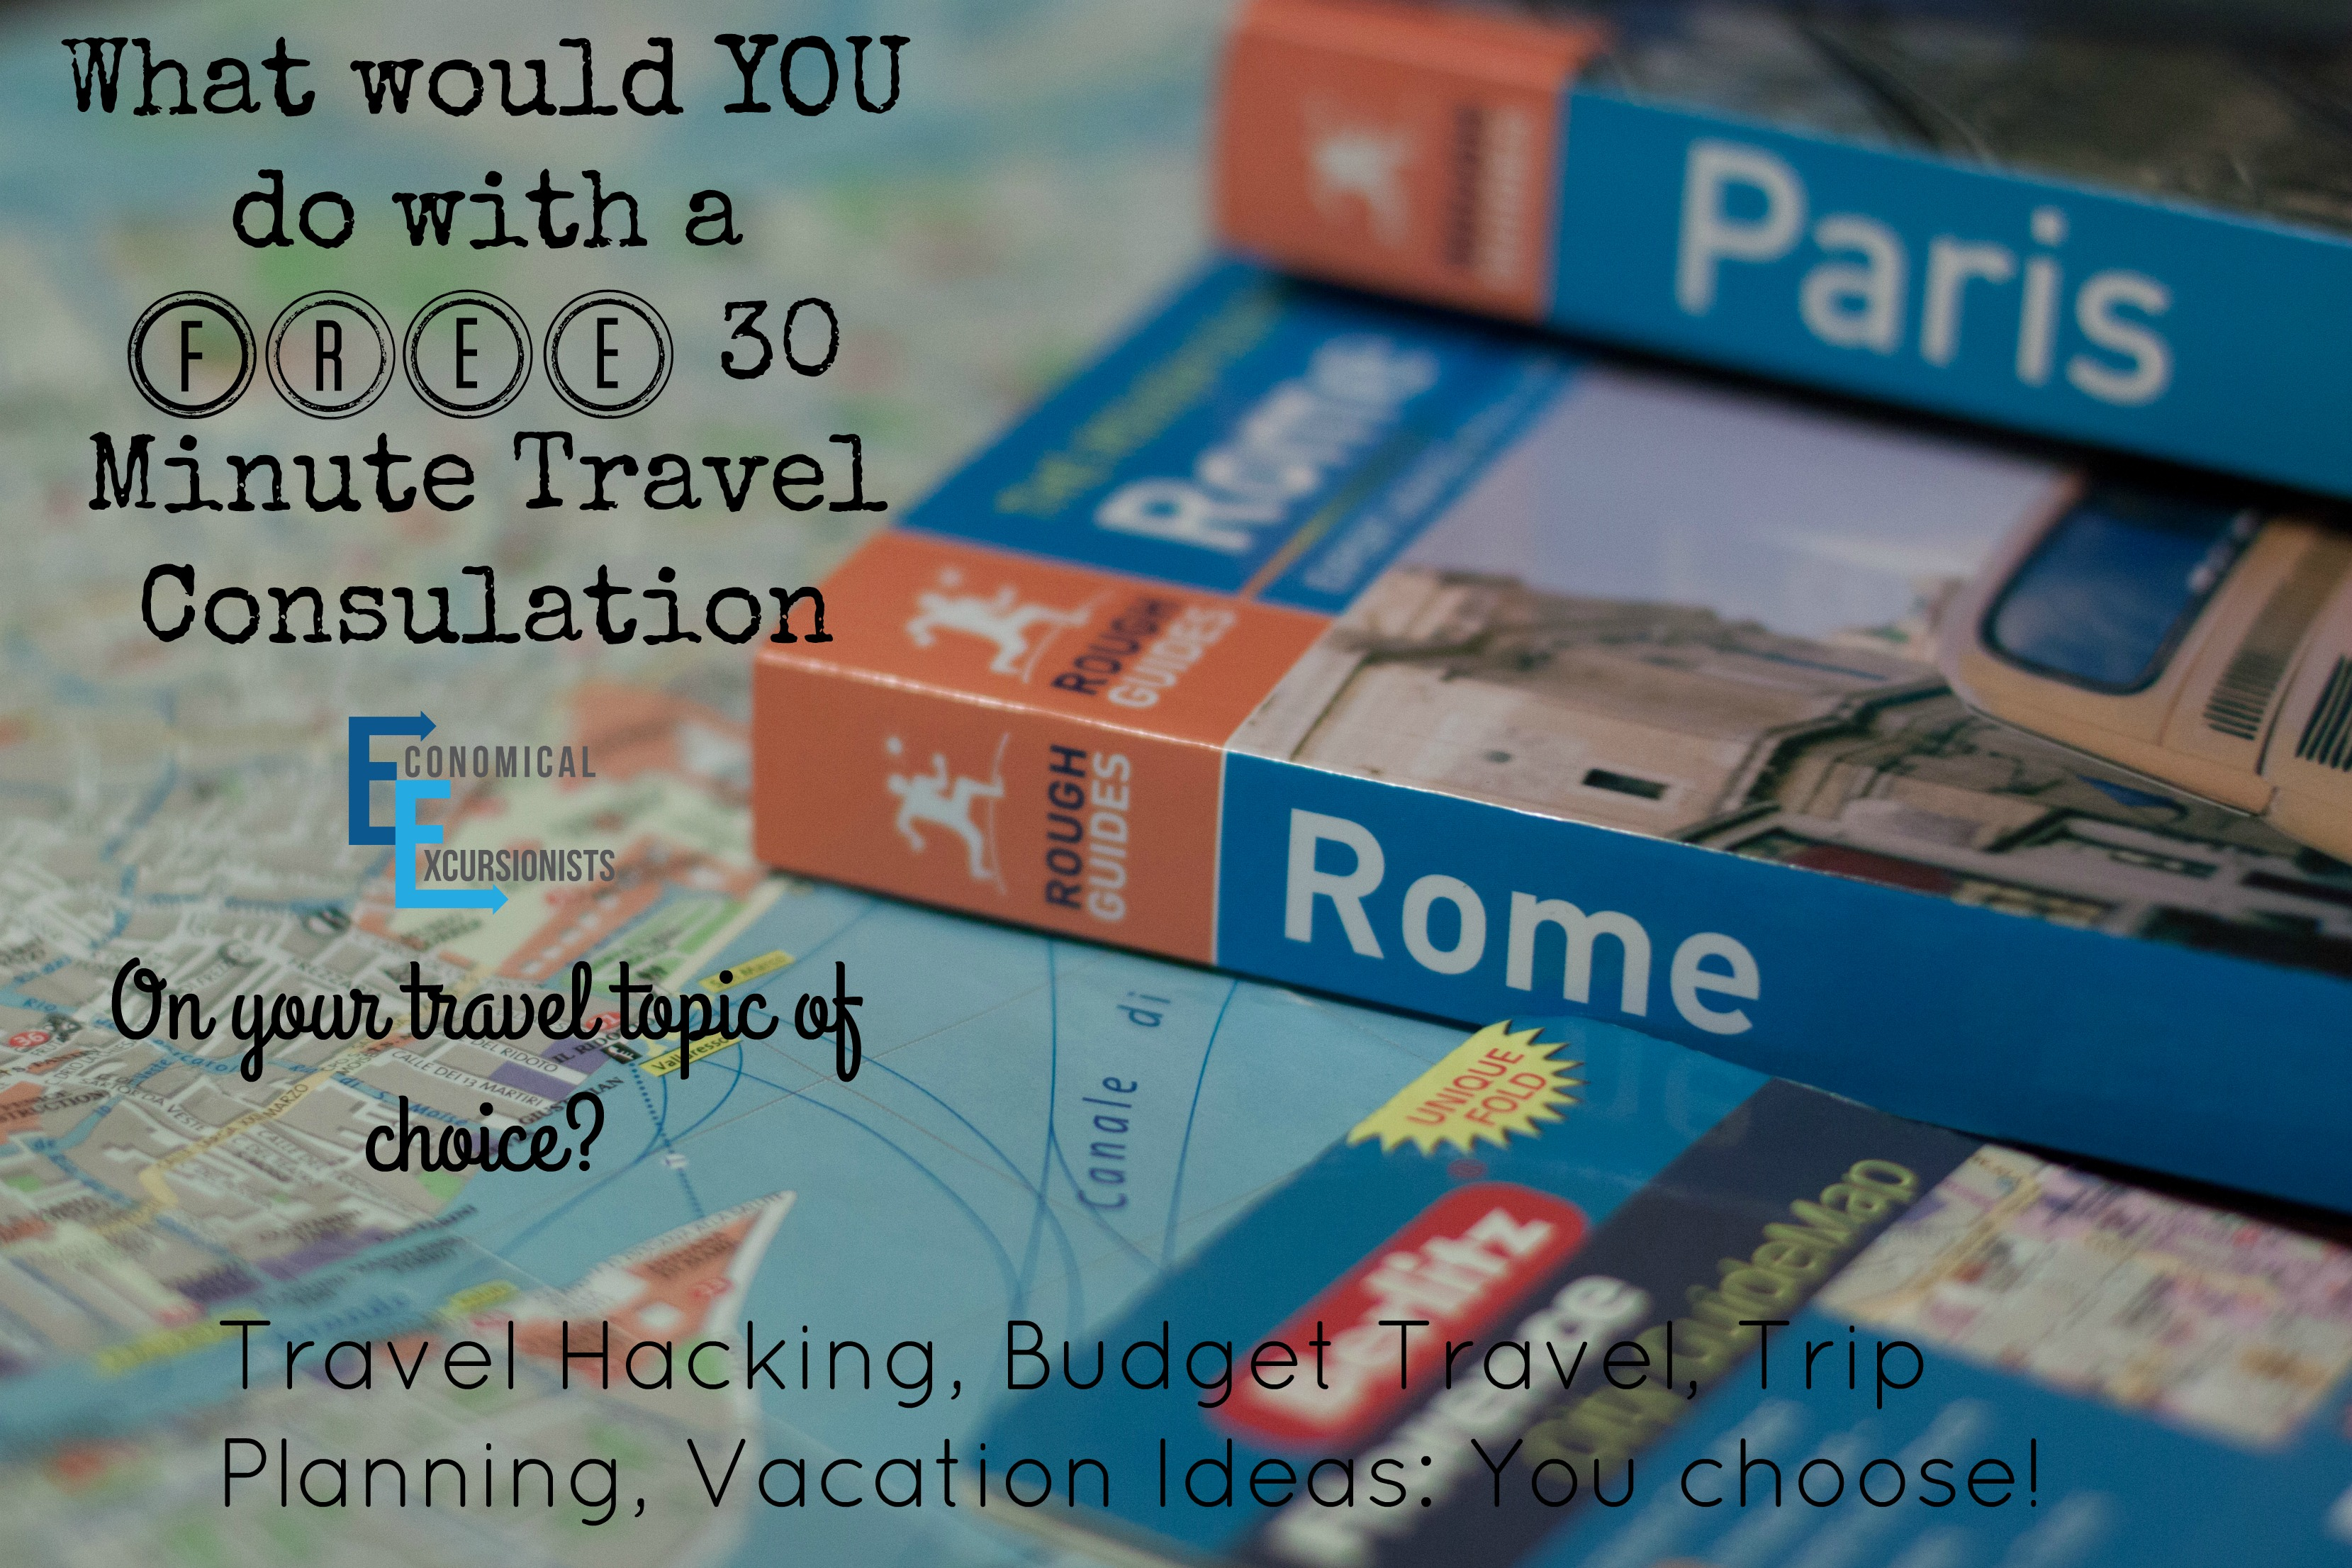 Free 30 Minute Travel Consultation? I'm In!